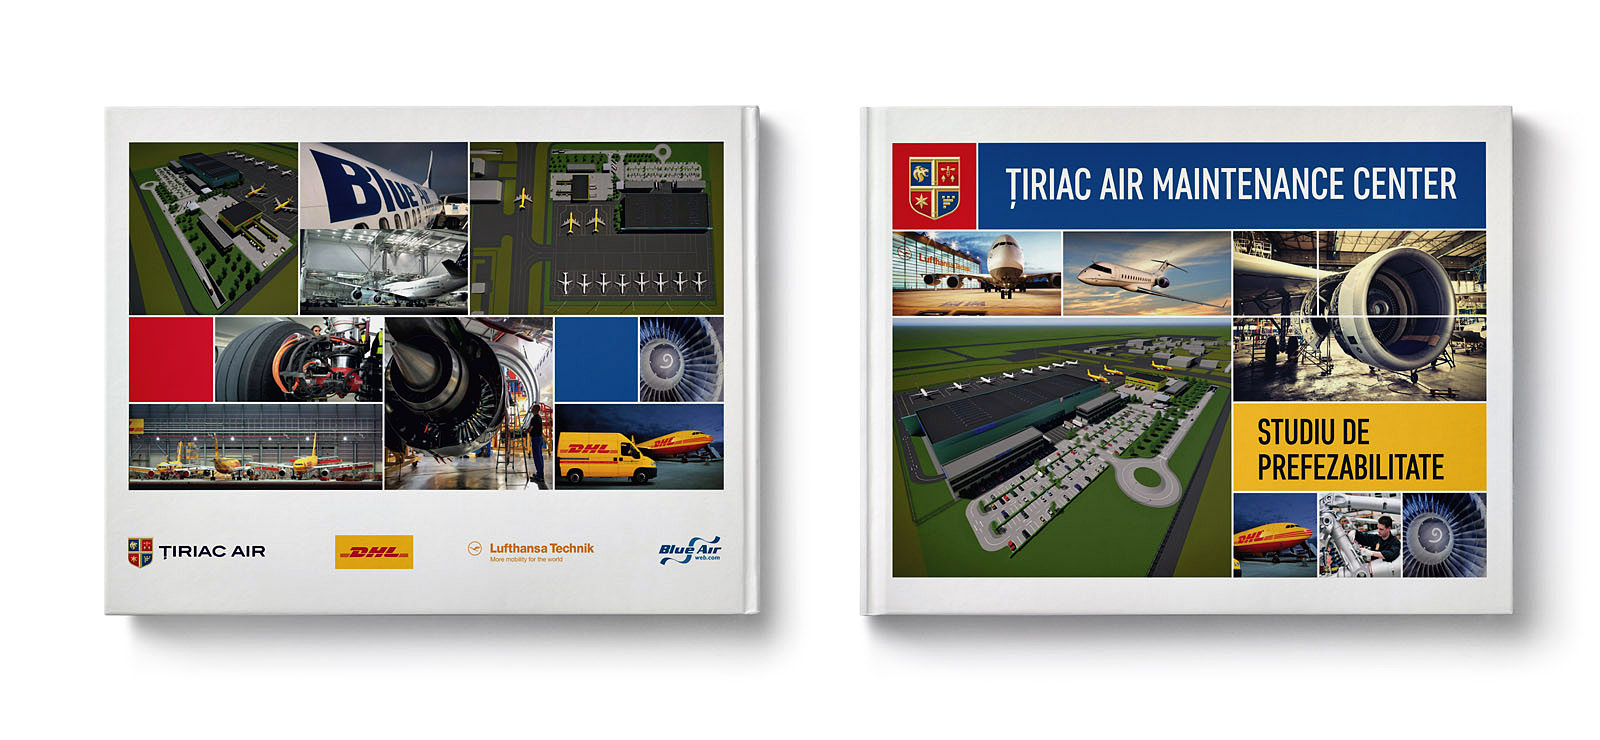 Tiriac Air Maintenance Center